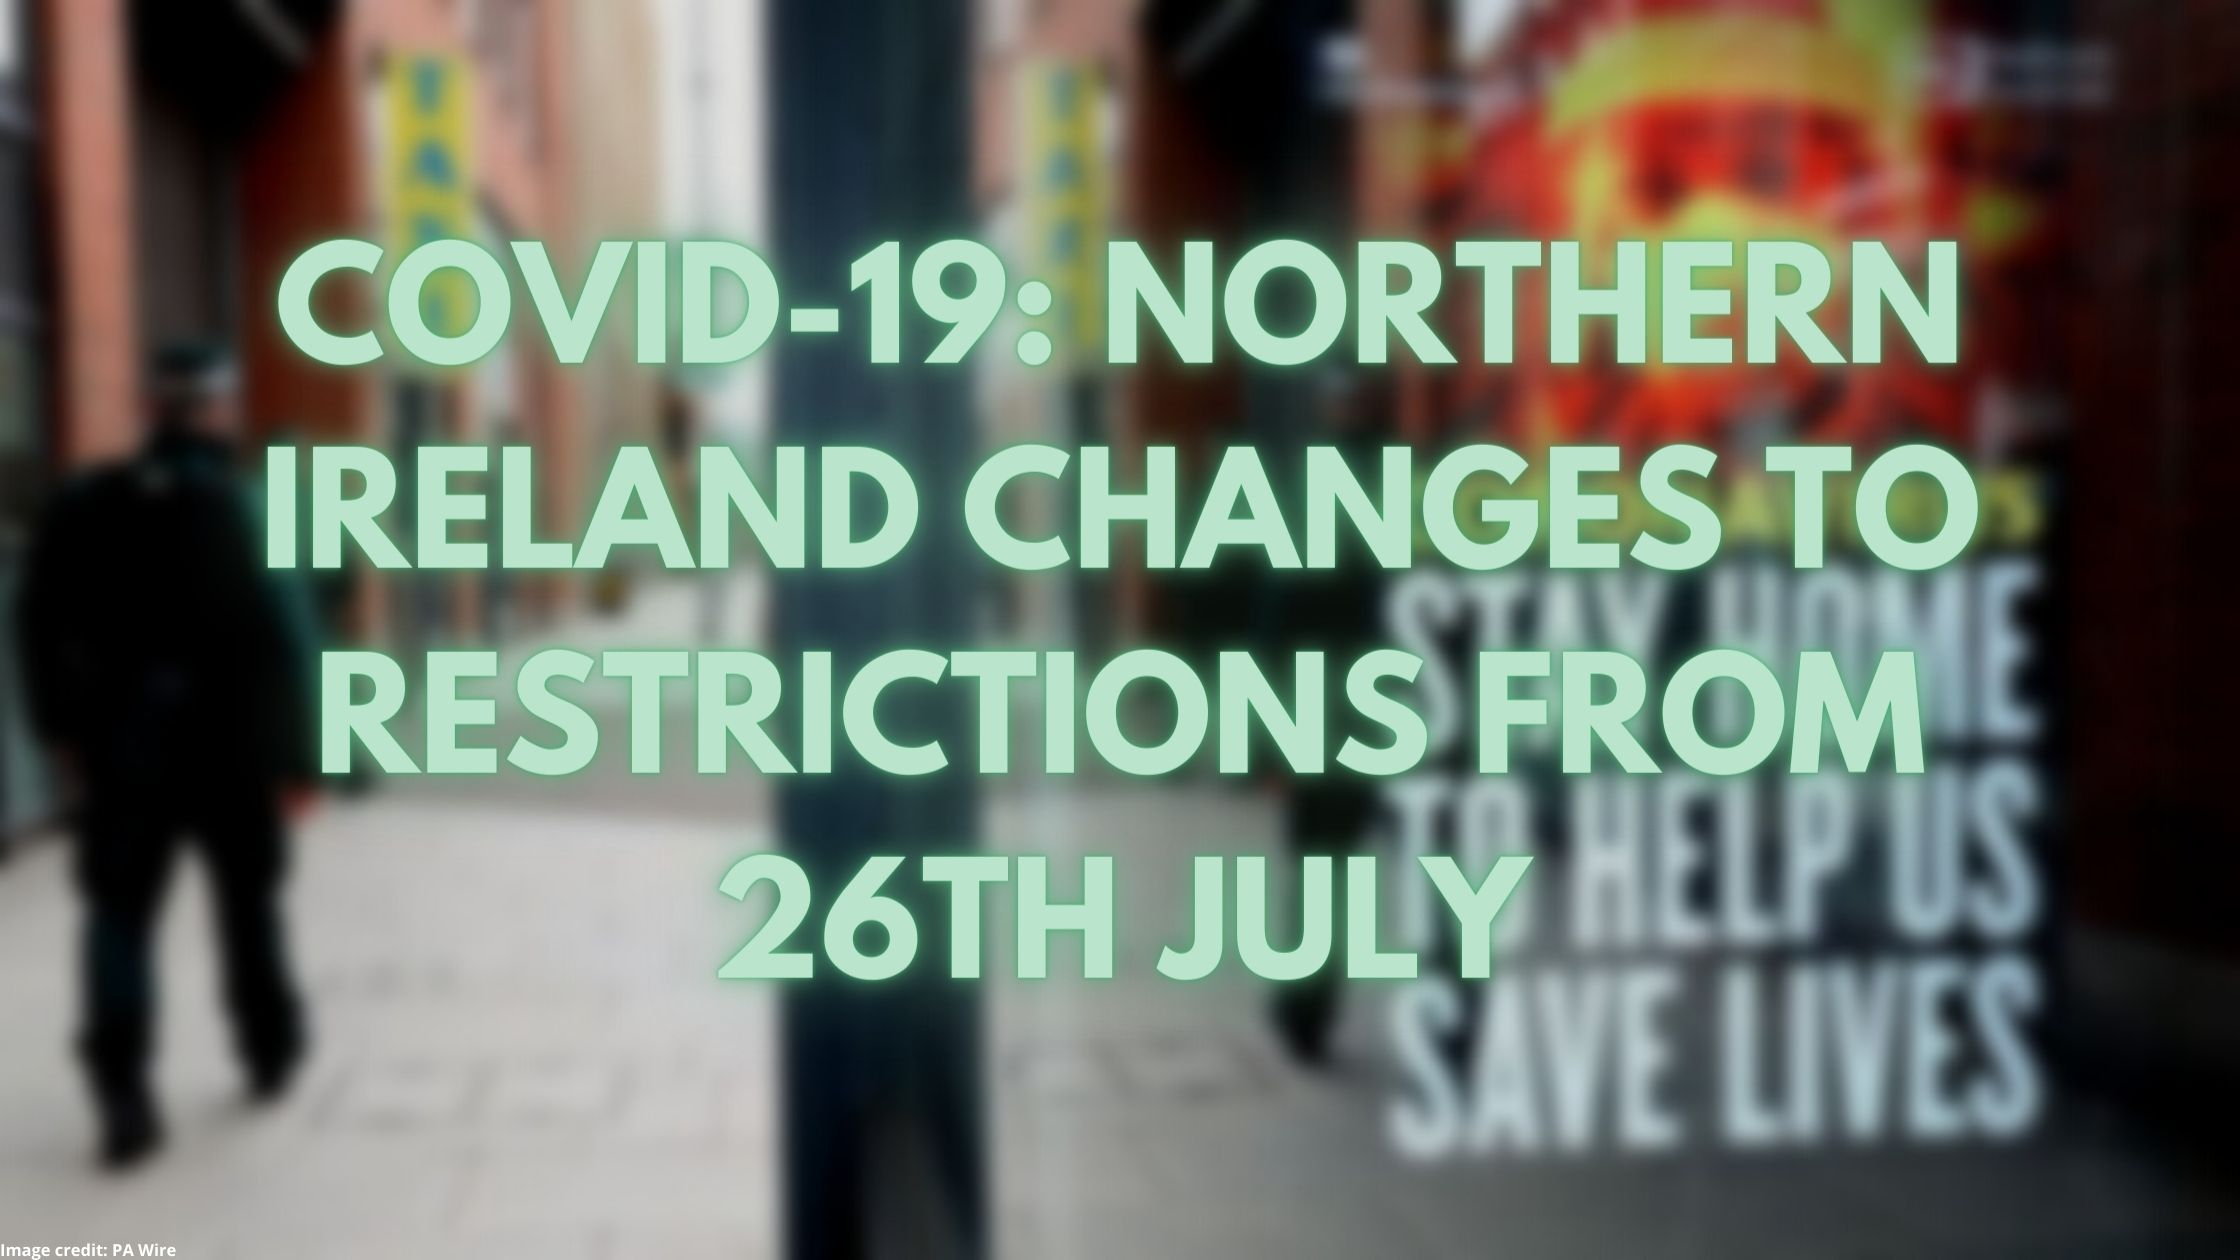 COVID-19: Northern Ireland updates from 26/07/2021